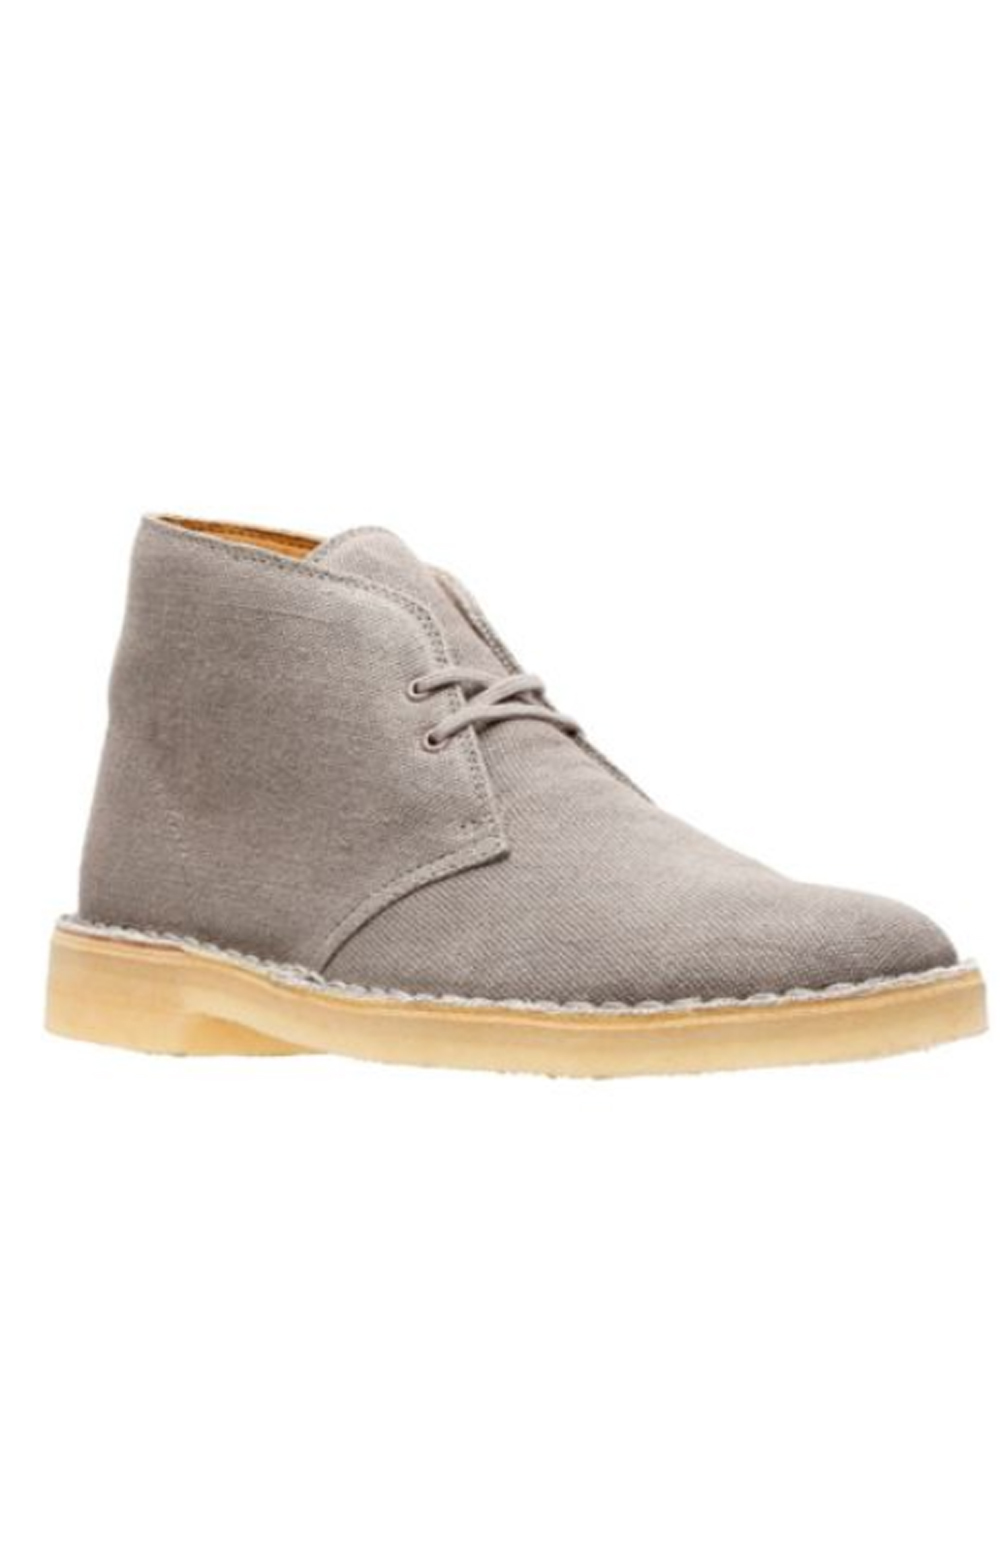 (26131983) Desert Boot - Taupe Canvas 2